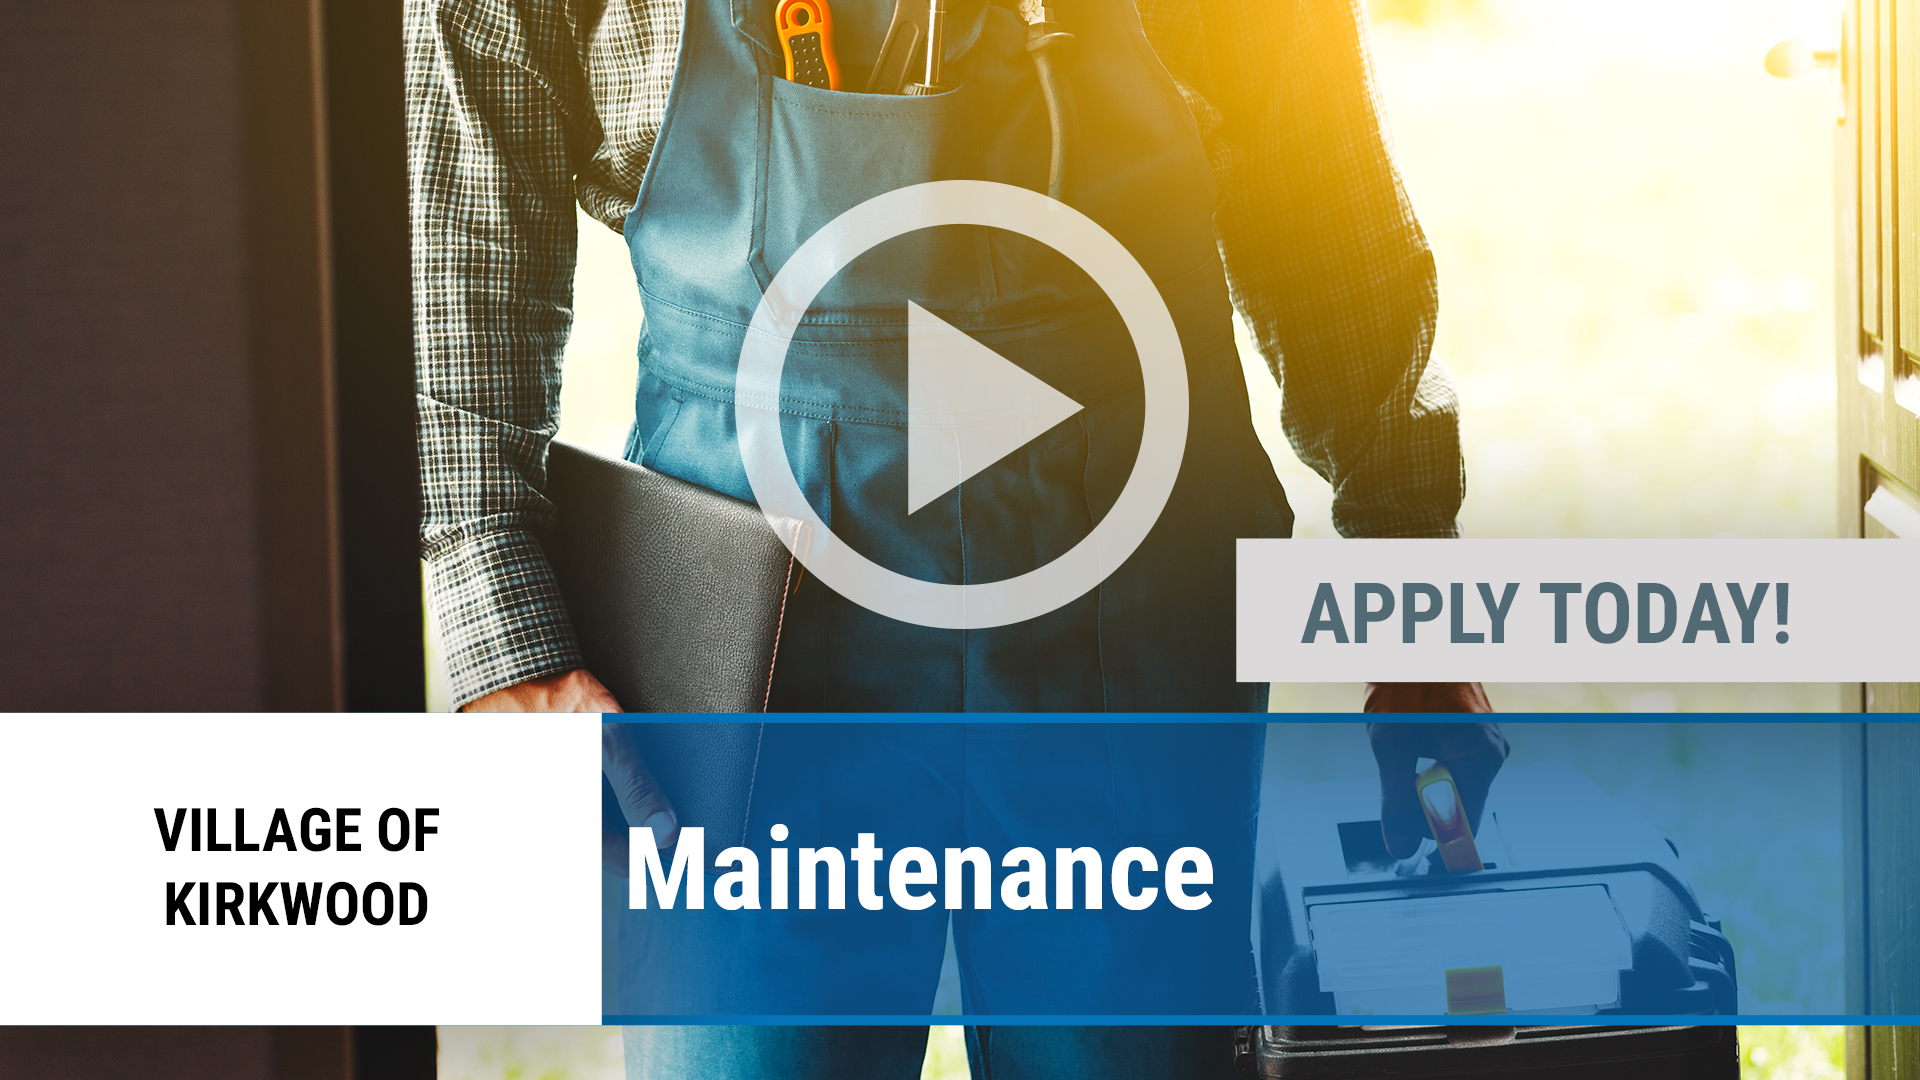 Watch our careers video for available job opening Maintenance in Kirkwood, IL